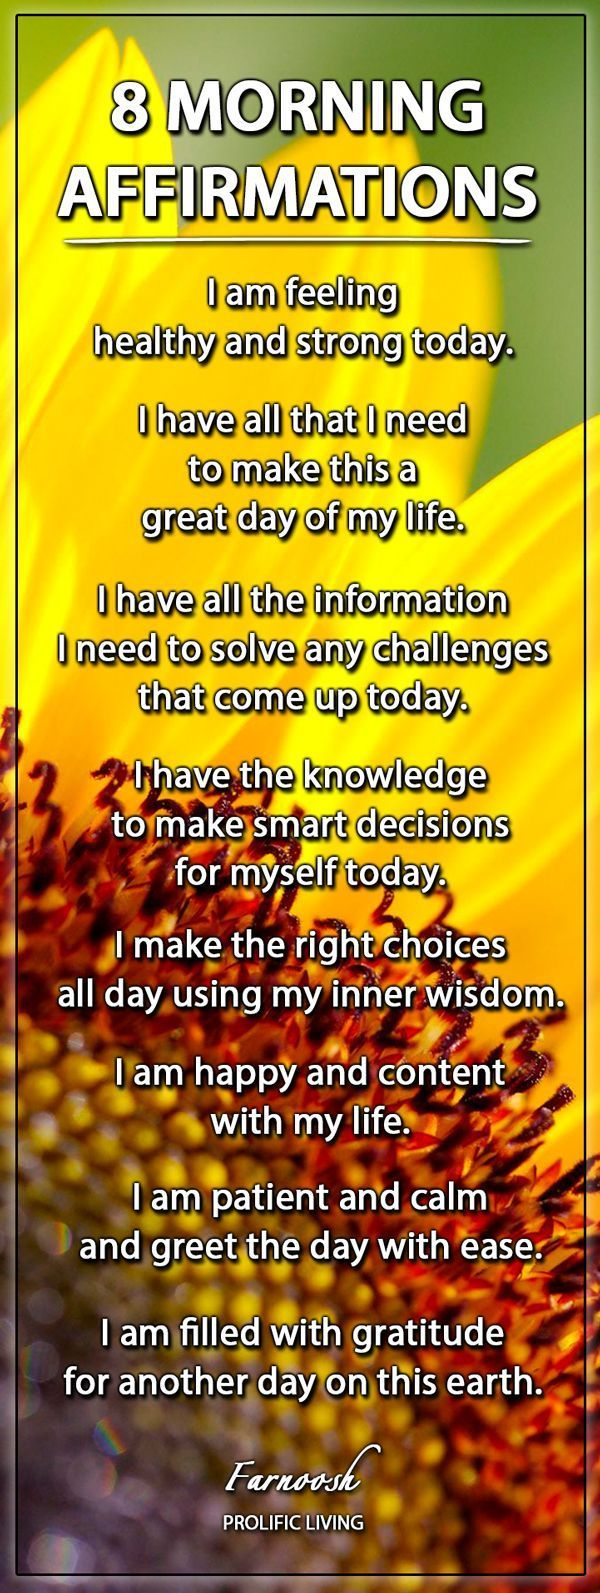 8 Affirmations To Say Every Morning Before Getting Up Positive Affirmations Affirmations Morning Affirmations